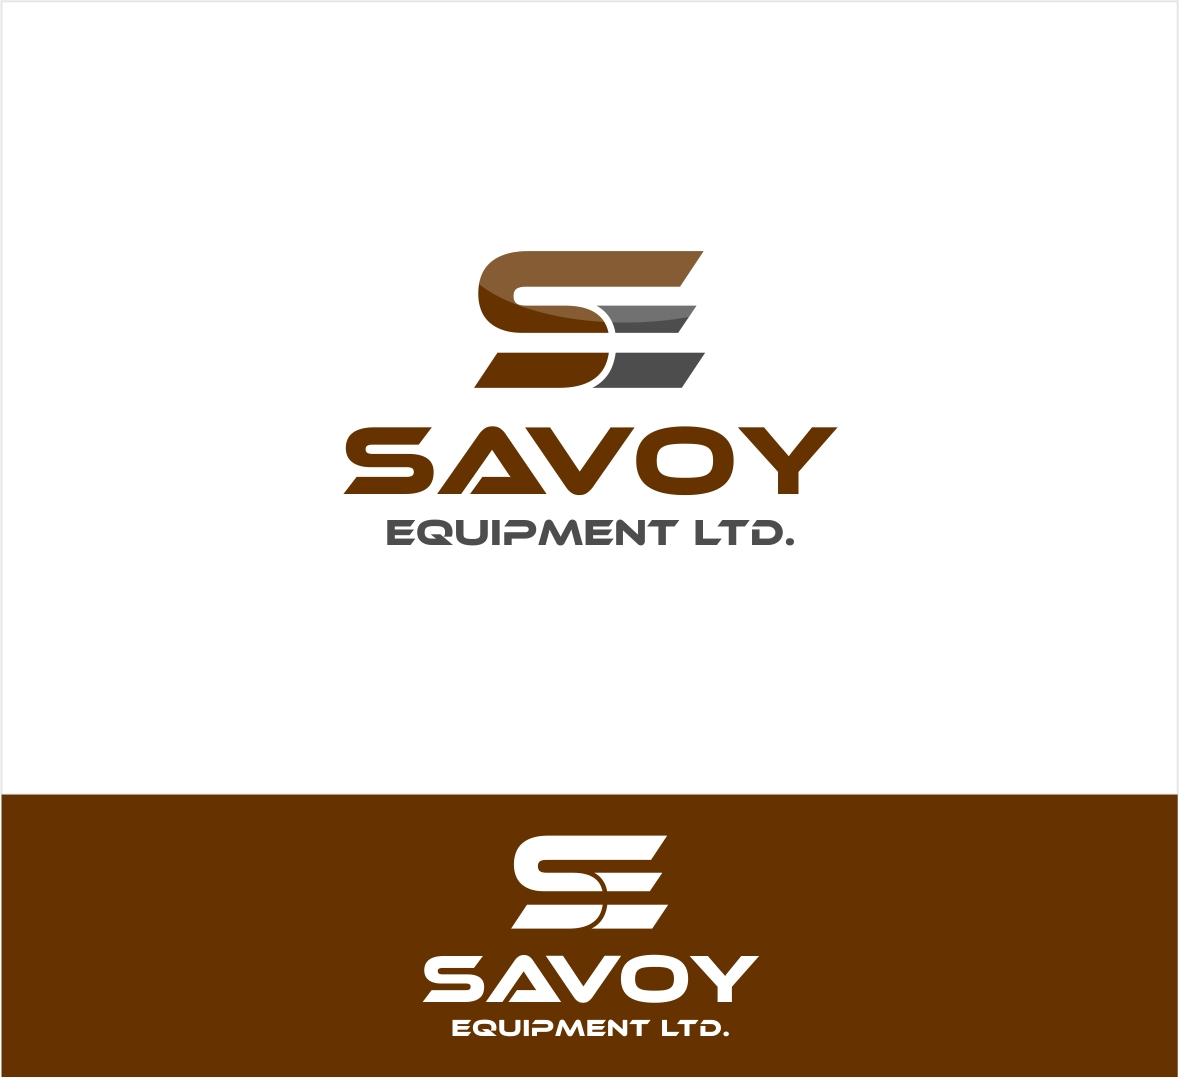 Logo Design by haidu - Entry No. 70 in the Logo Design Contest Inspiring Logo Design for Savoy Equipment Ltd..